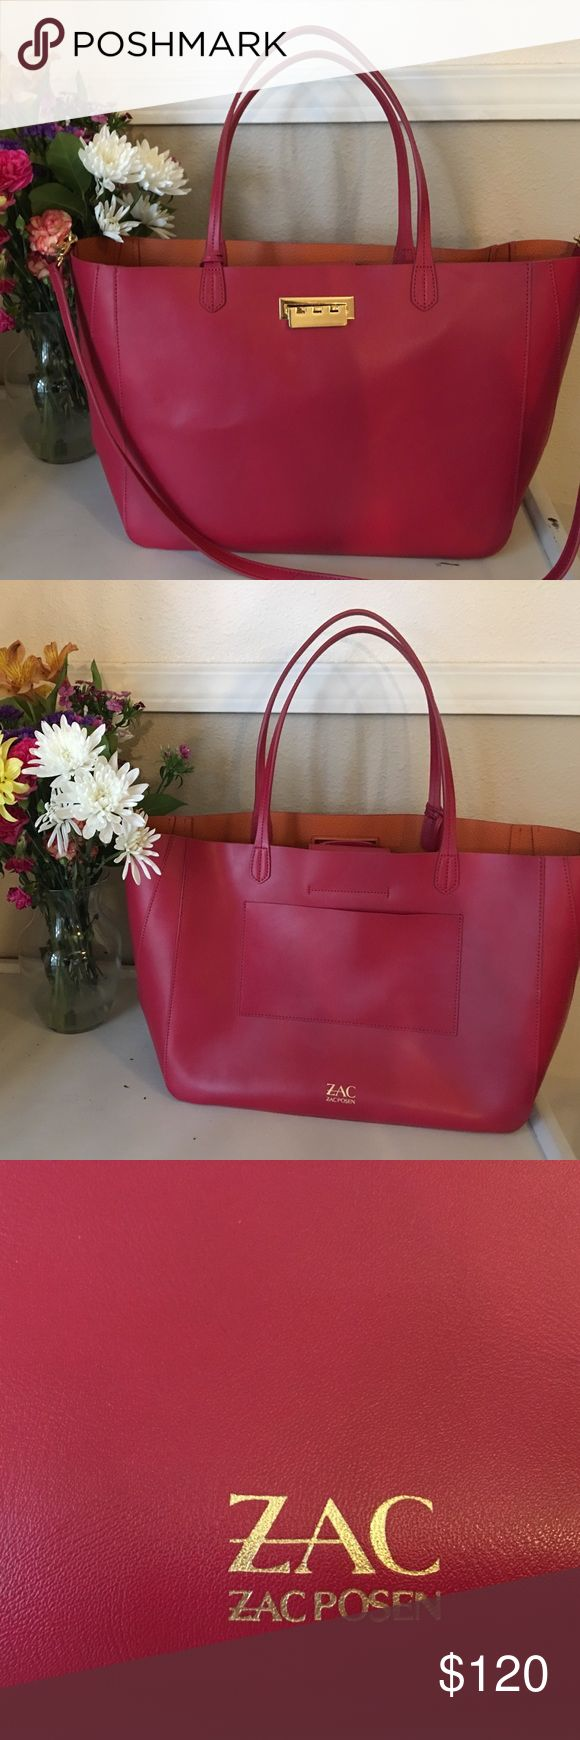 Zac Posen leather purse Beautiful Zac Posen Large deep red colored leather purse. This purse is previously used but you can tell from pictures it is in excellent condition. Comes with shoulder strap. Zac Posen Bags Totes